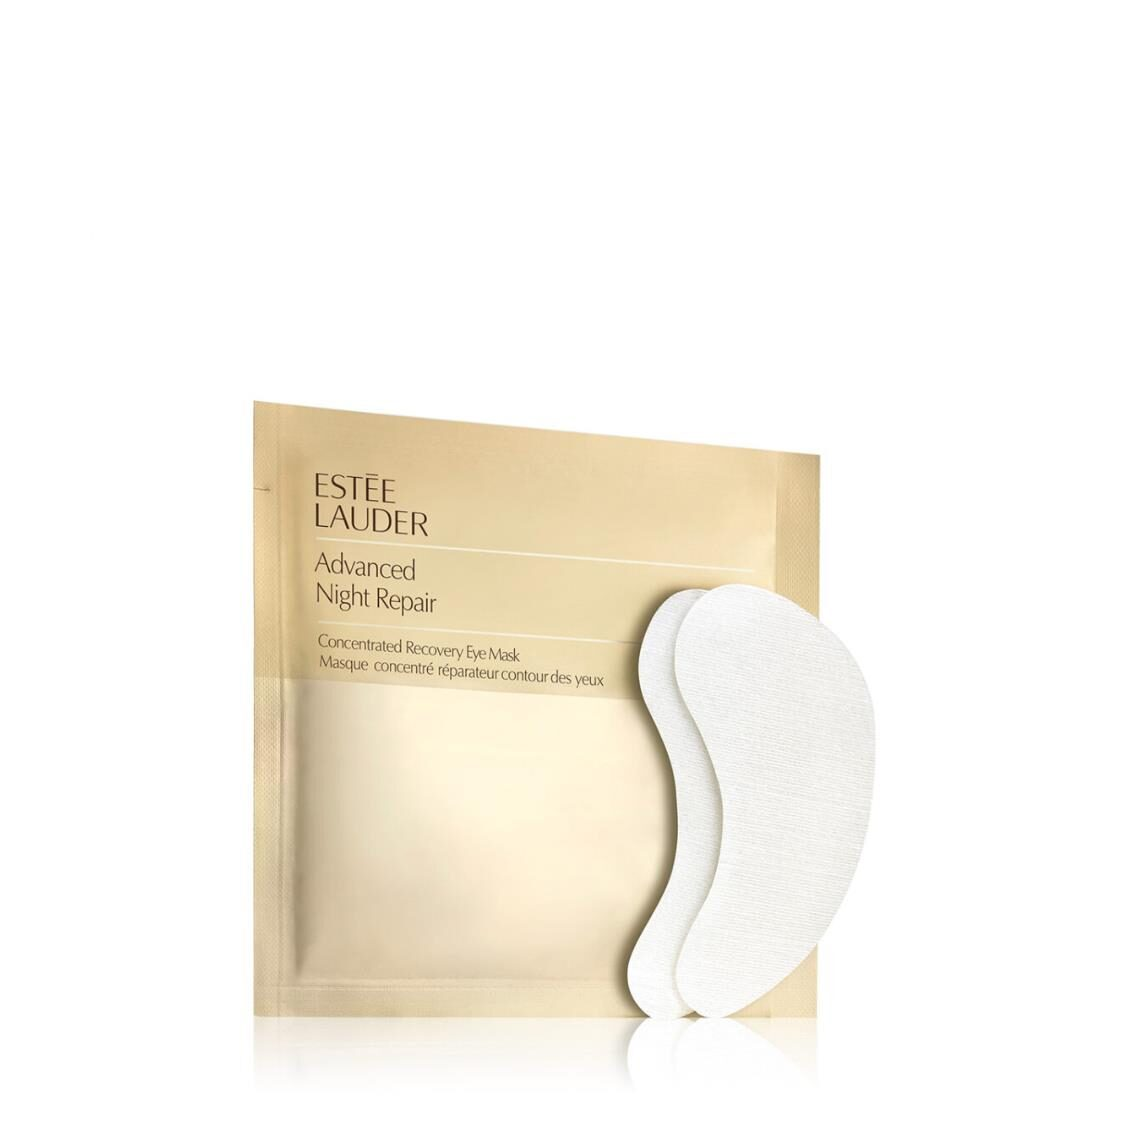 Este Lauder Advanced Night Repair Concentrated Recovery Eye Mask 4 pairs